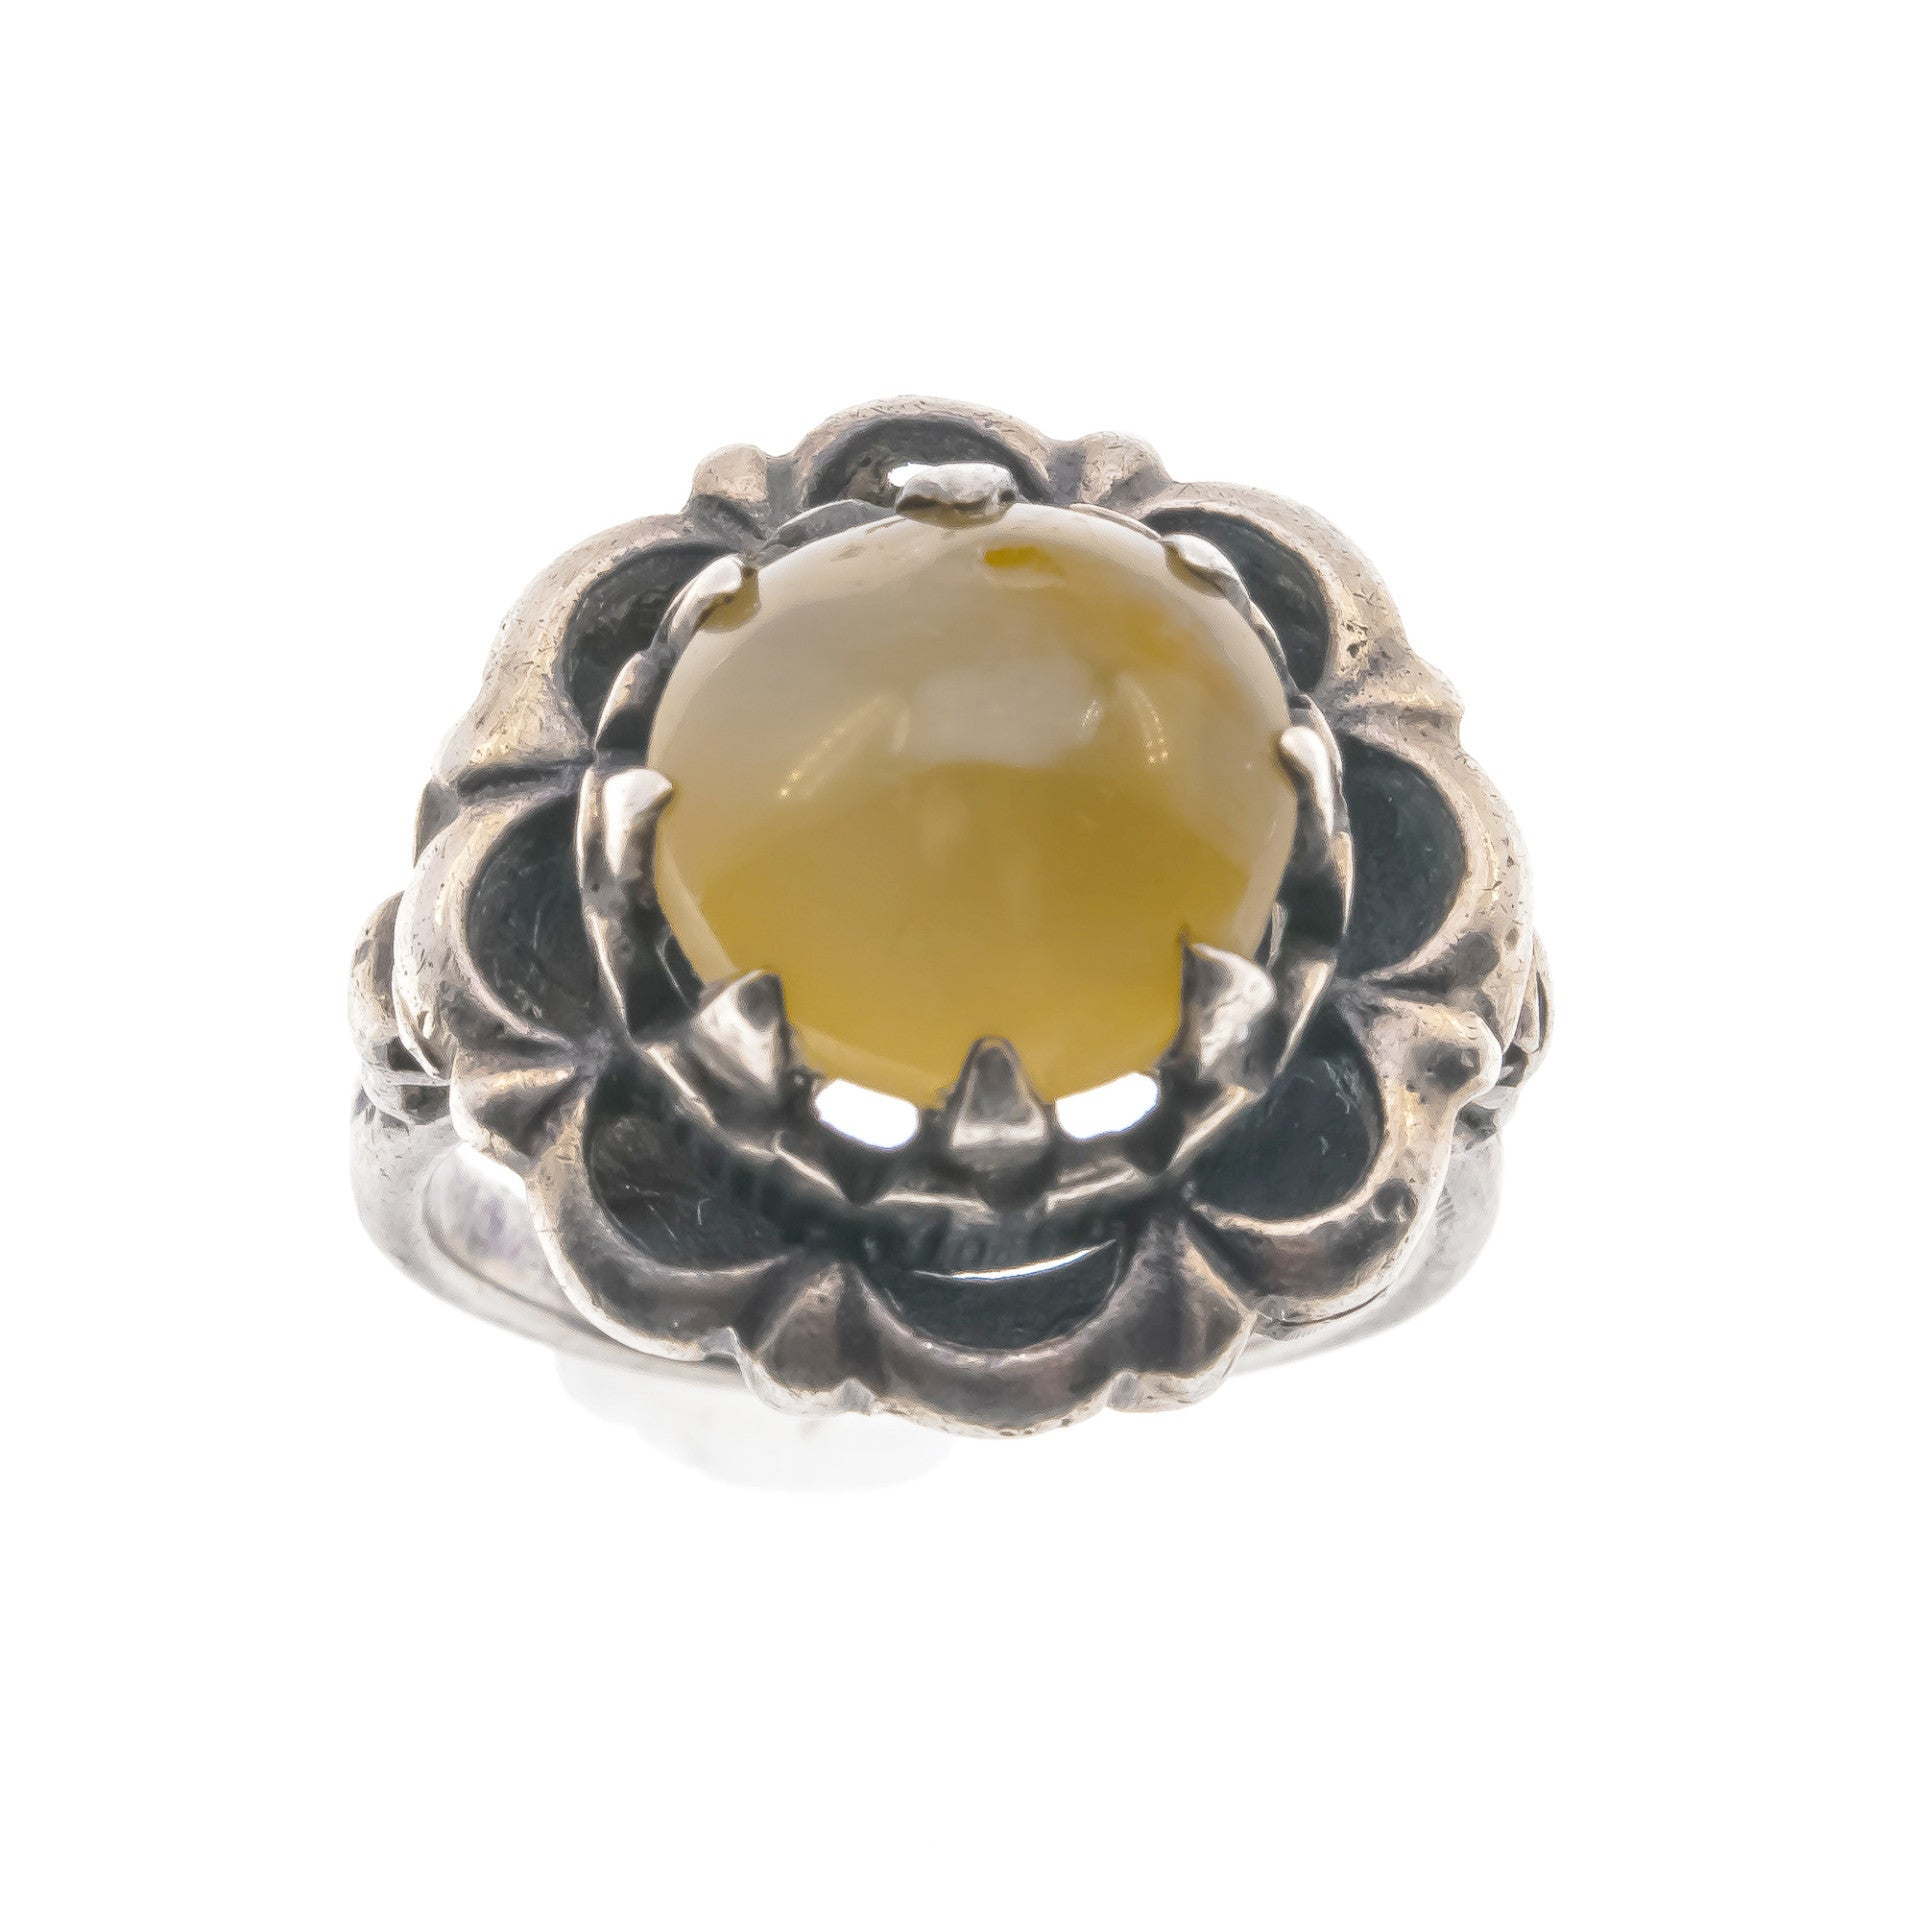 Vintage Sterling Silver Honey Agate Ring